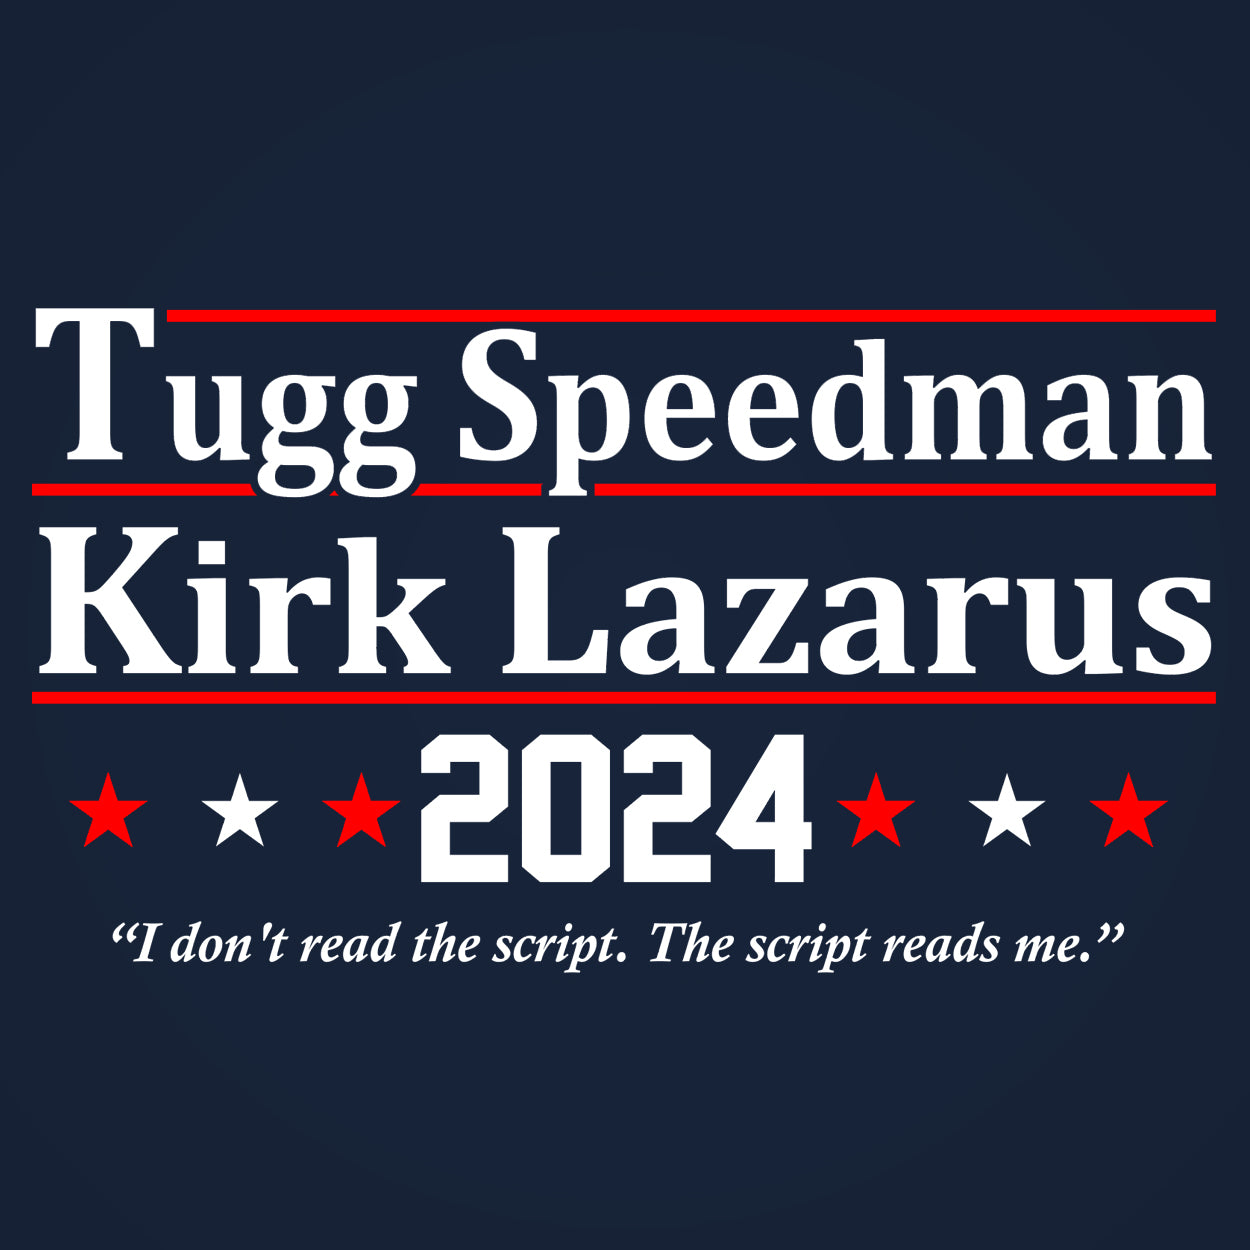 Tugg Speedman Kirk Lazarus 2024 Election